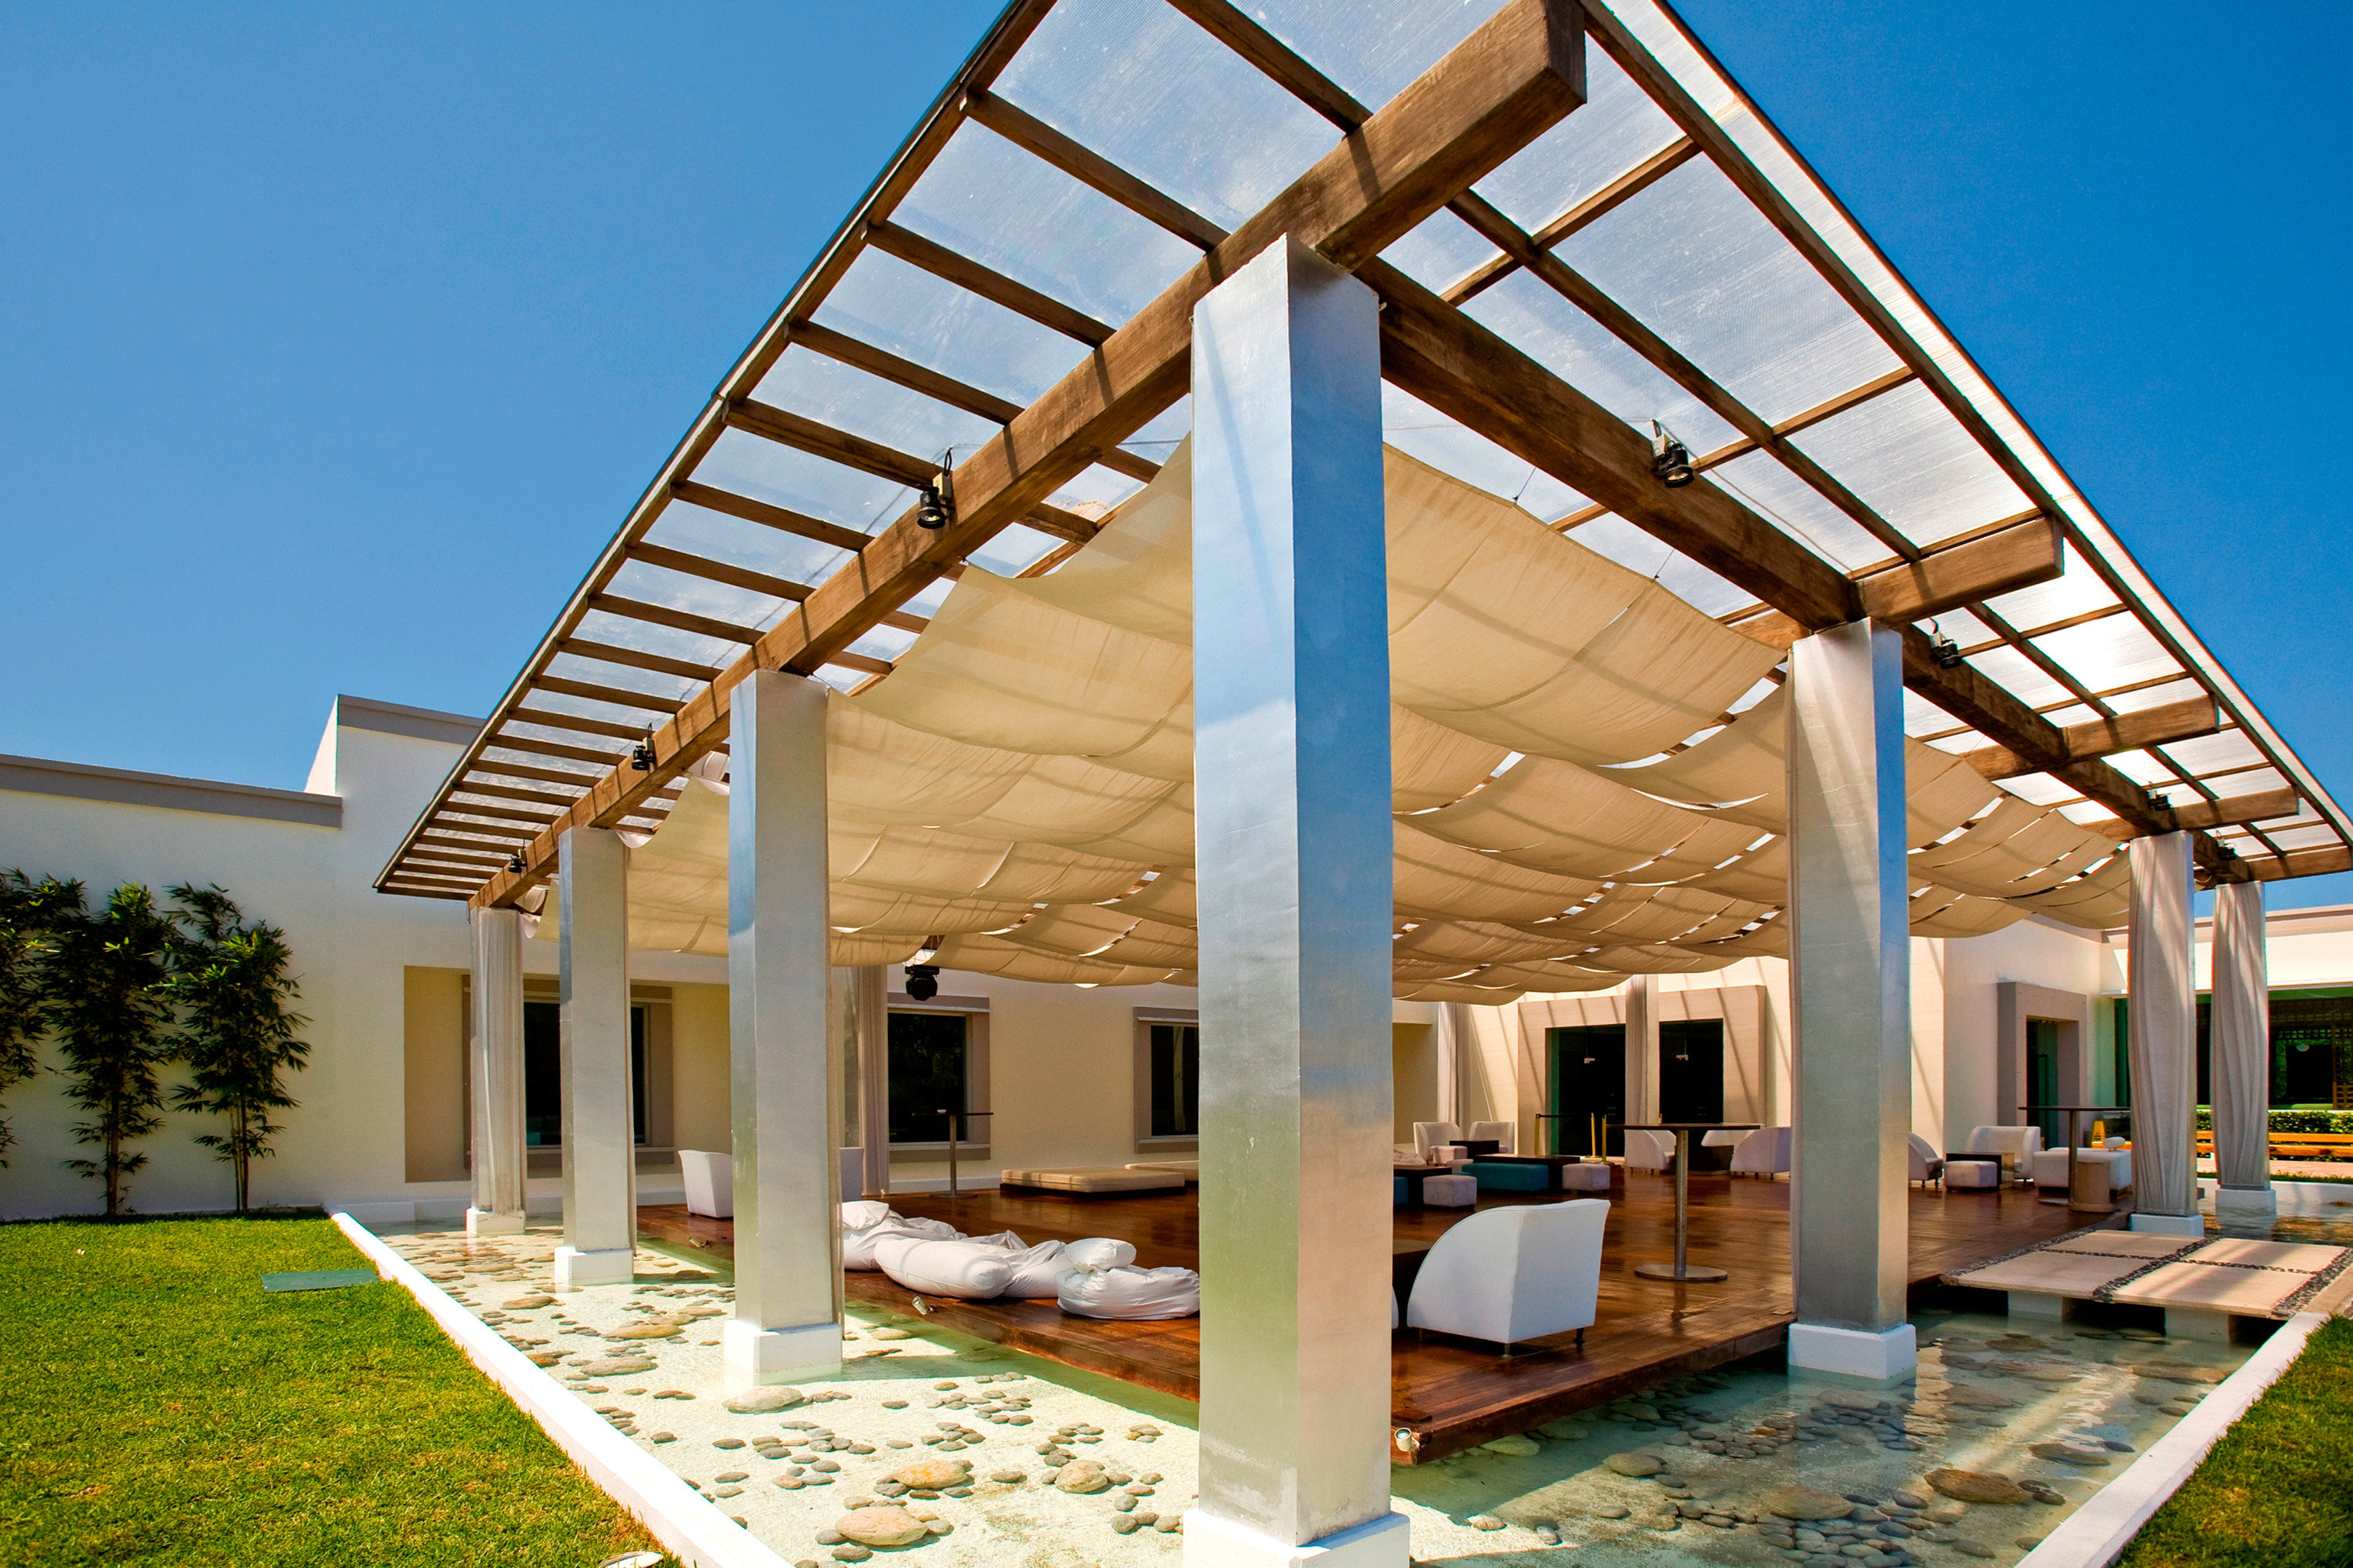 Beachfront Elegant Hip Lounge Luxury sky building pergola property Architecture outdoor structure home daylighting canopy pavilion roof